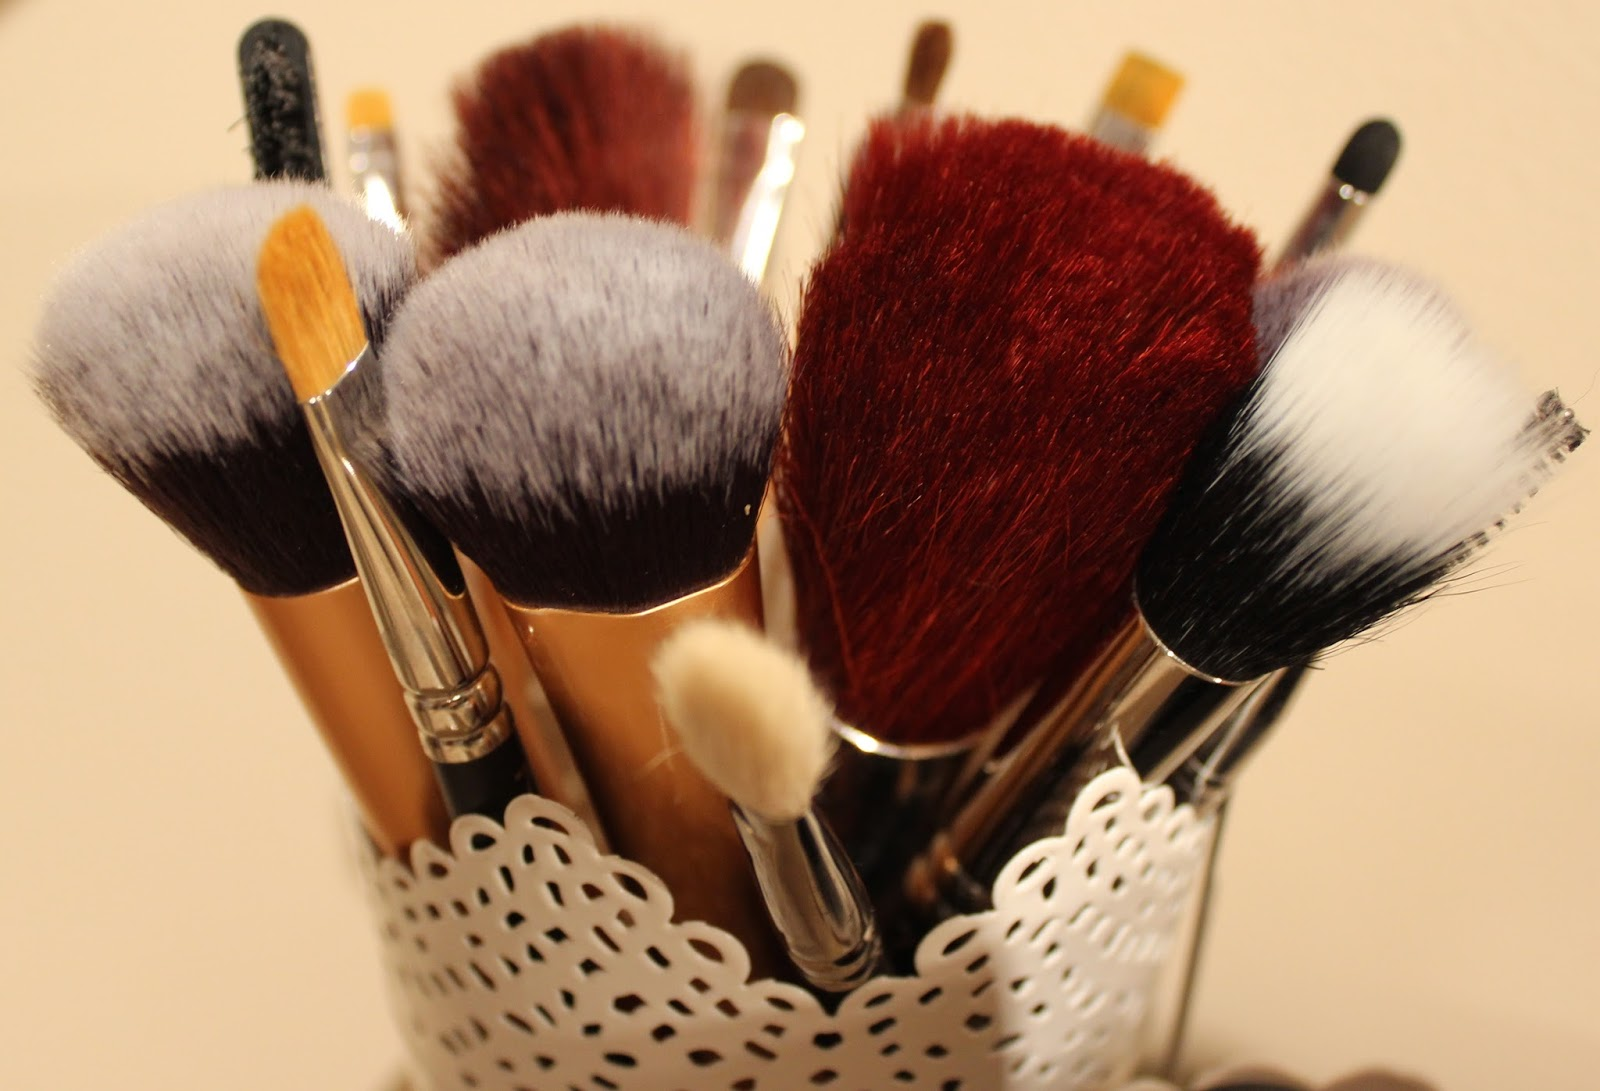 Cleaning makeup brushes with baby shampoo